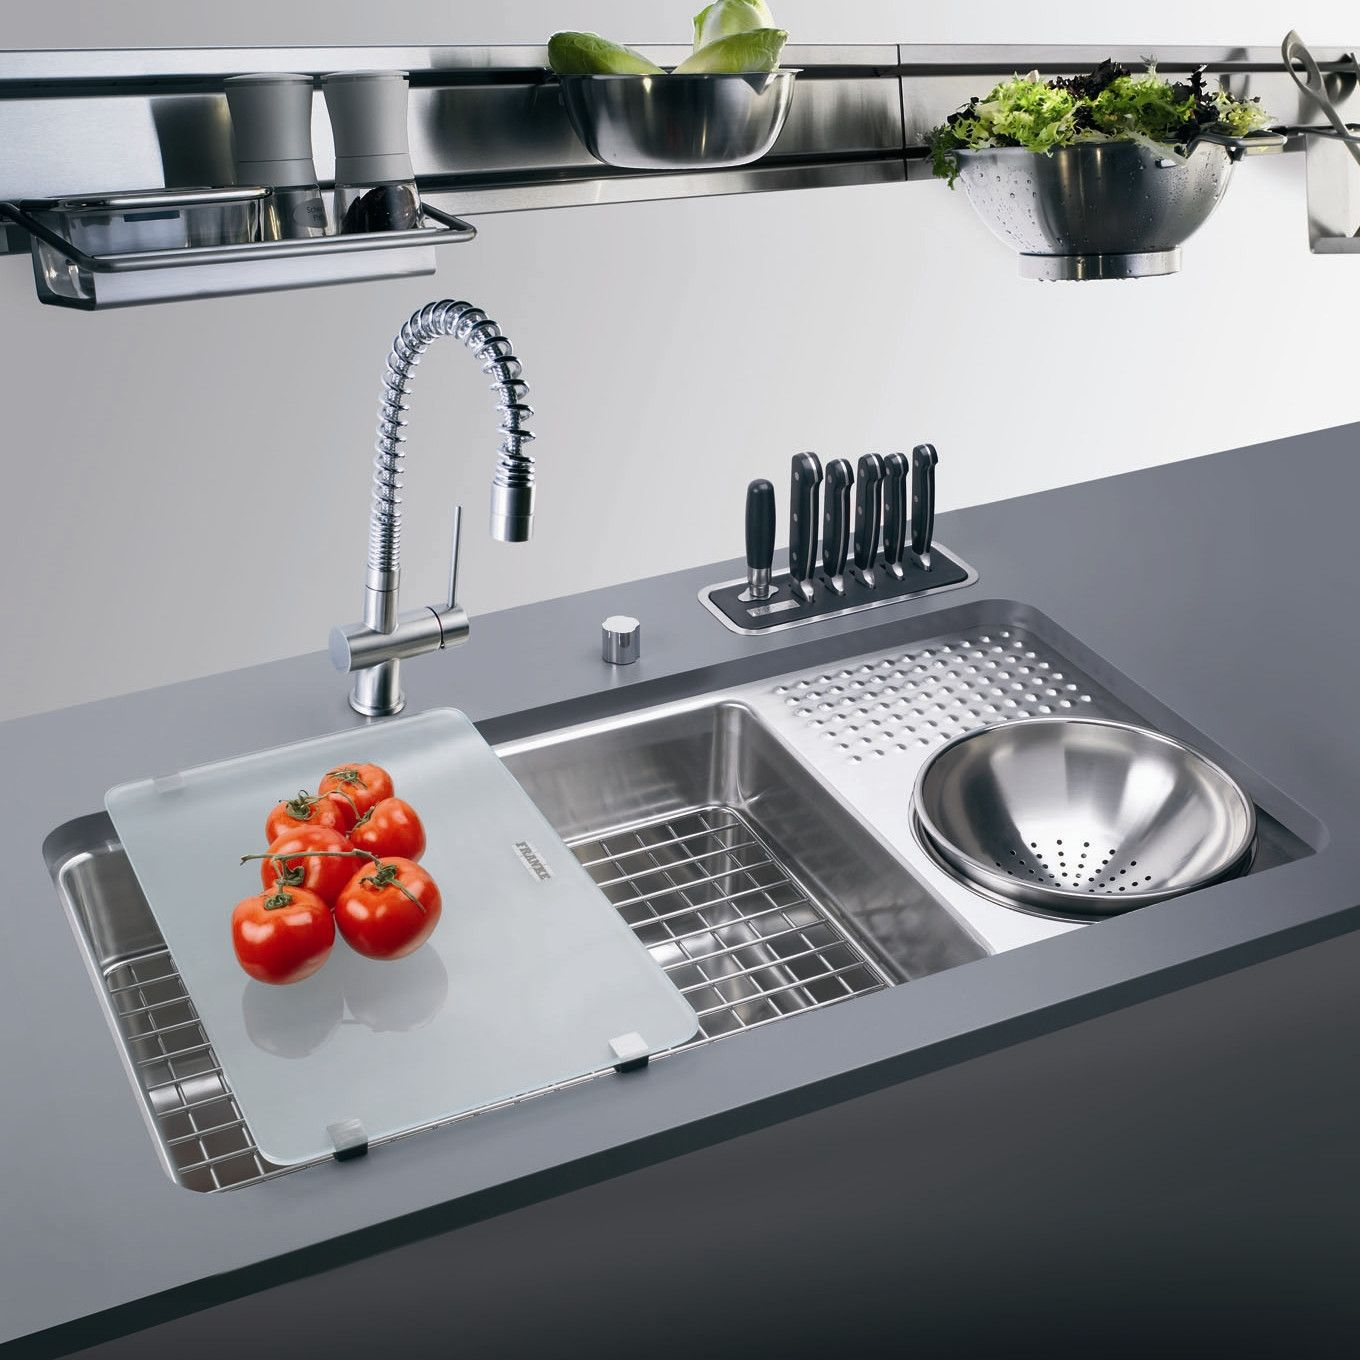 Unplanned renovation budget busters | Sinks, Kitchens and Black sink